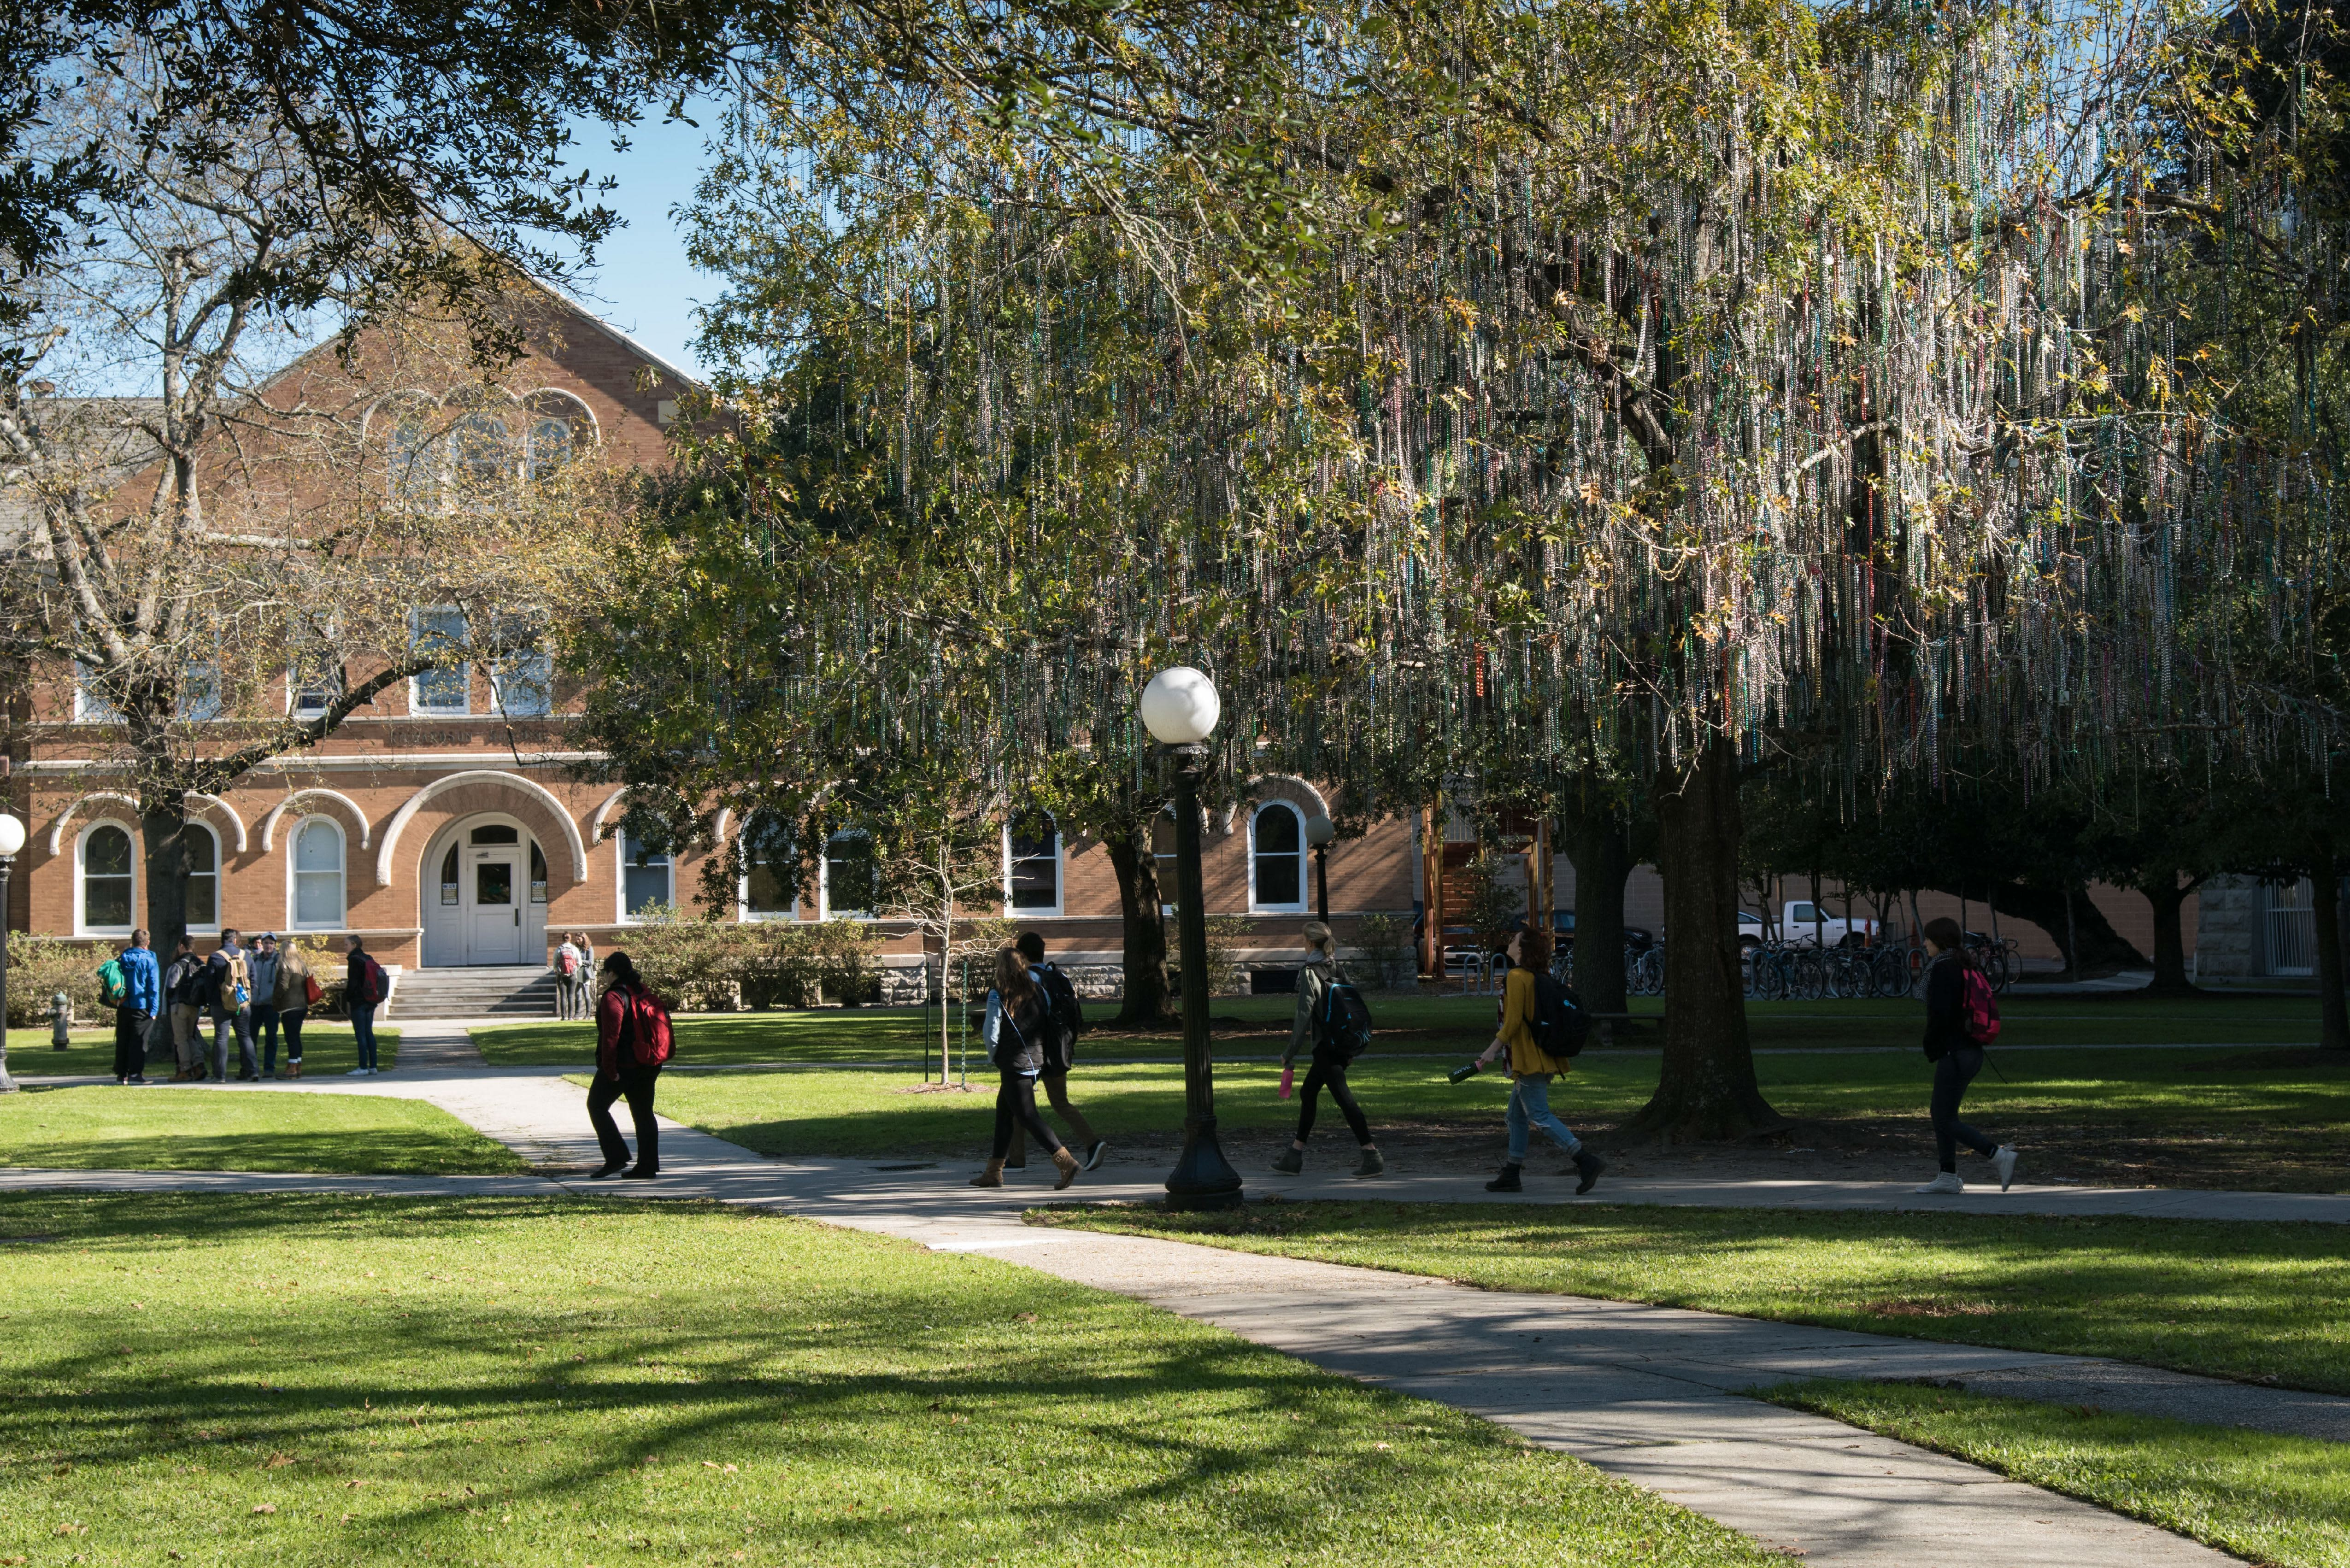 Tulane University threatens expulsion for partygoers as schools struggle to bring students back safely